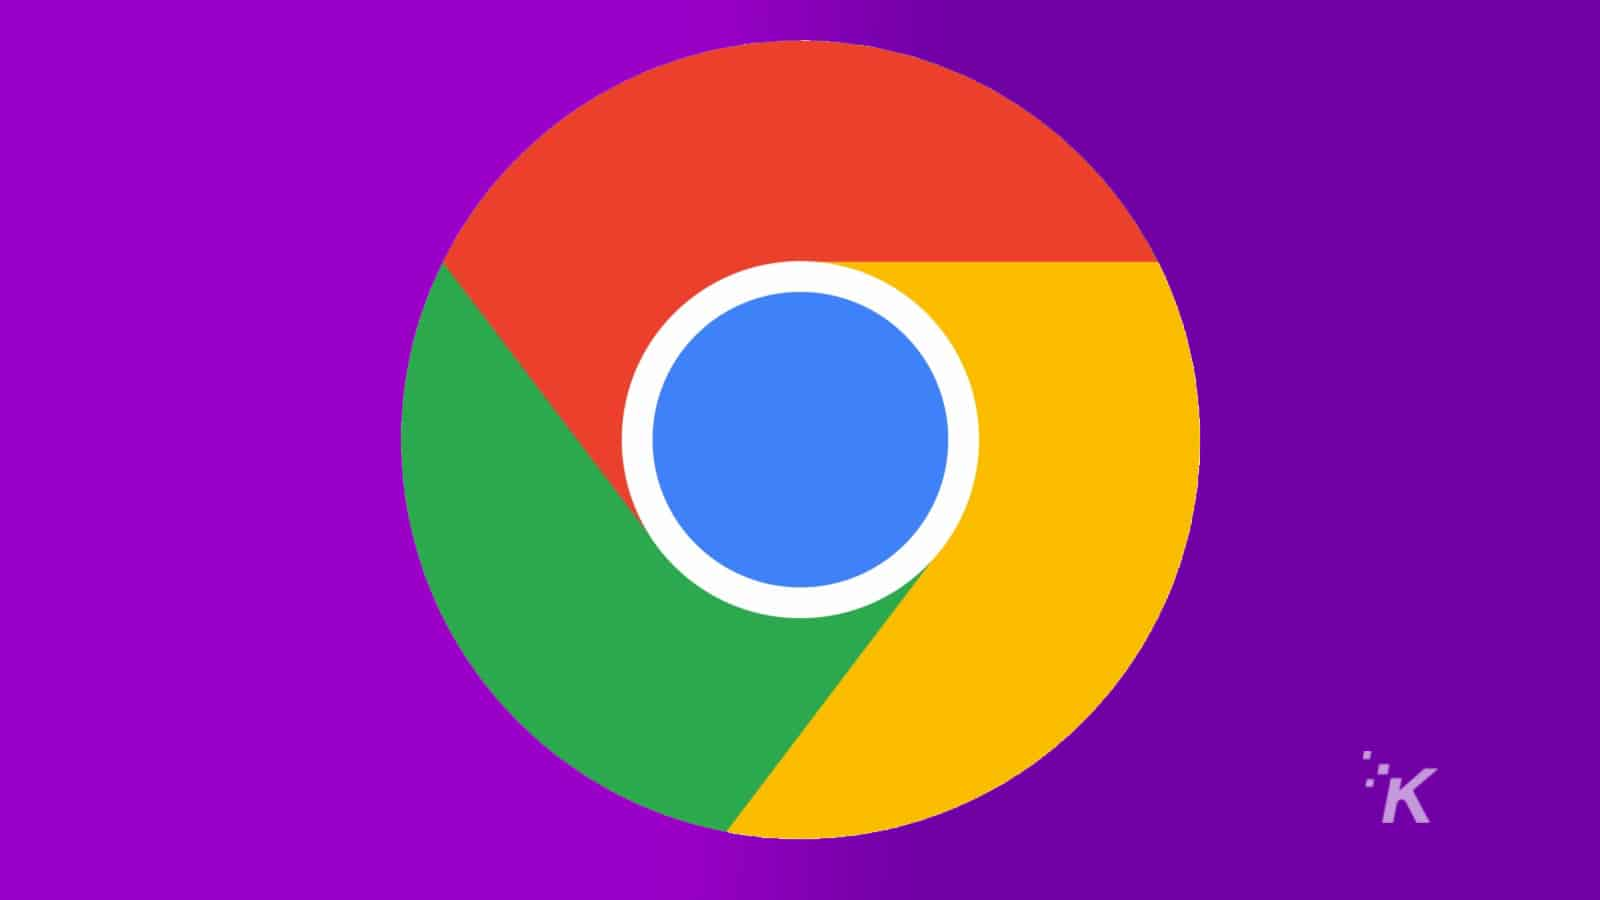 google chrome logo on purple background